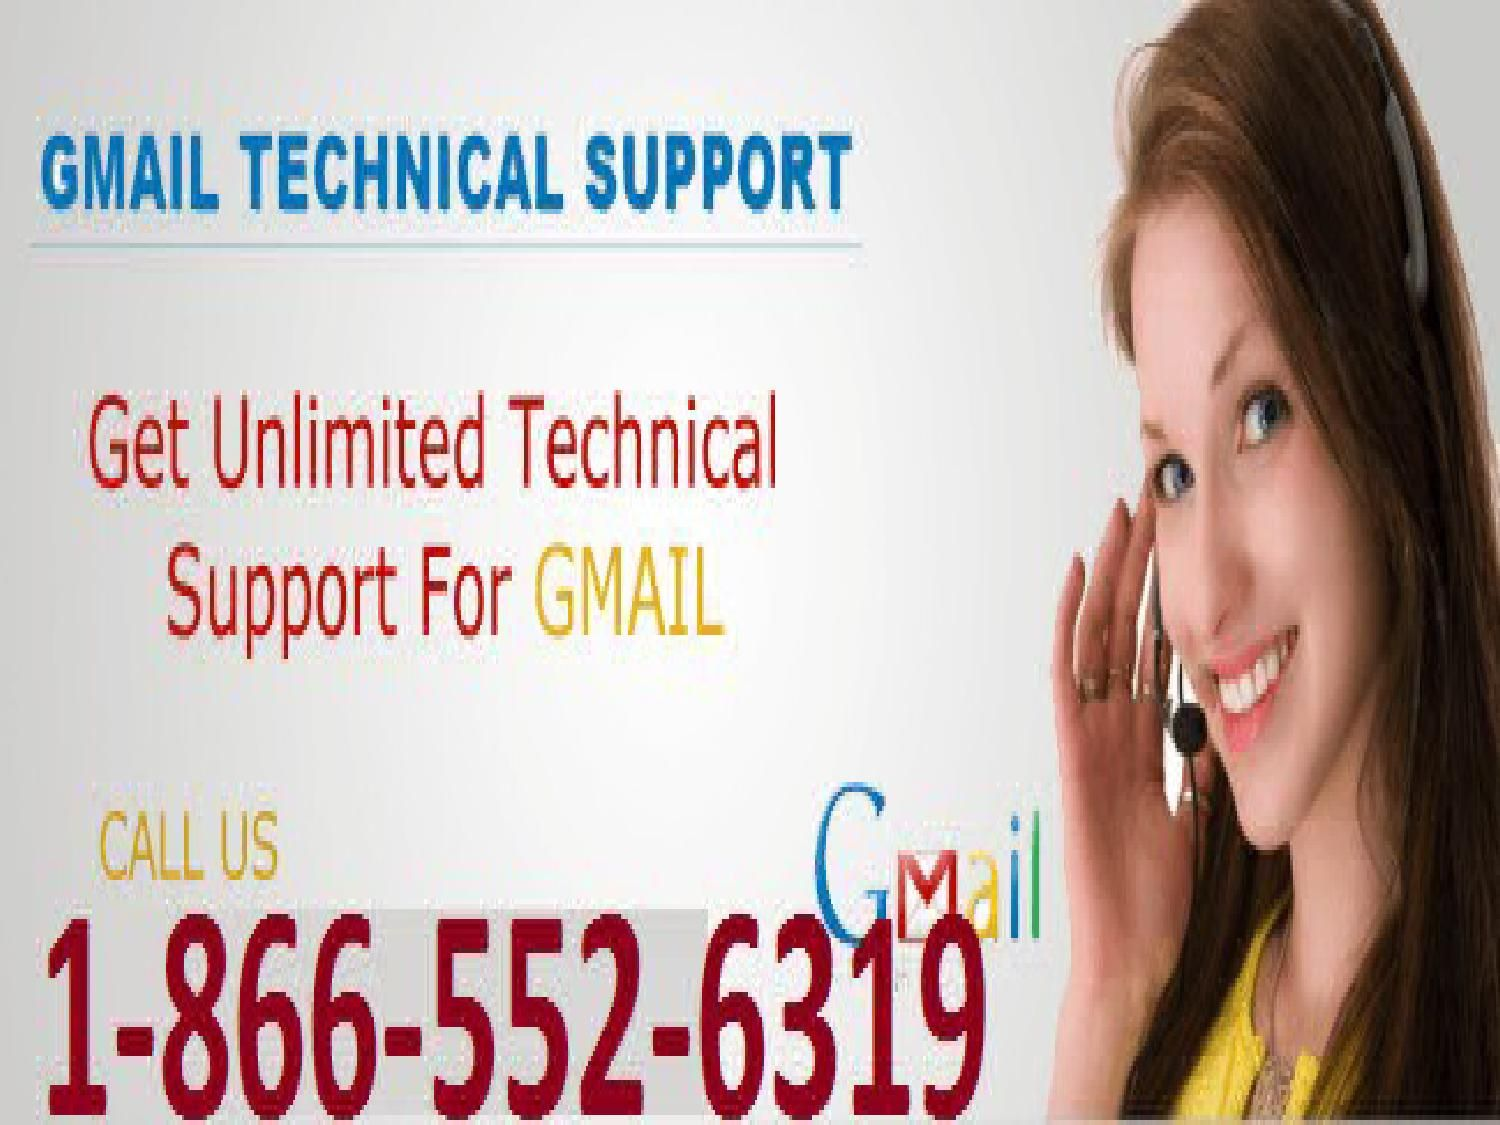 Call fro Gmail Technical Support Number 18665526319